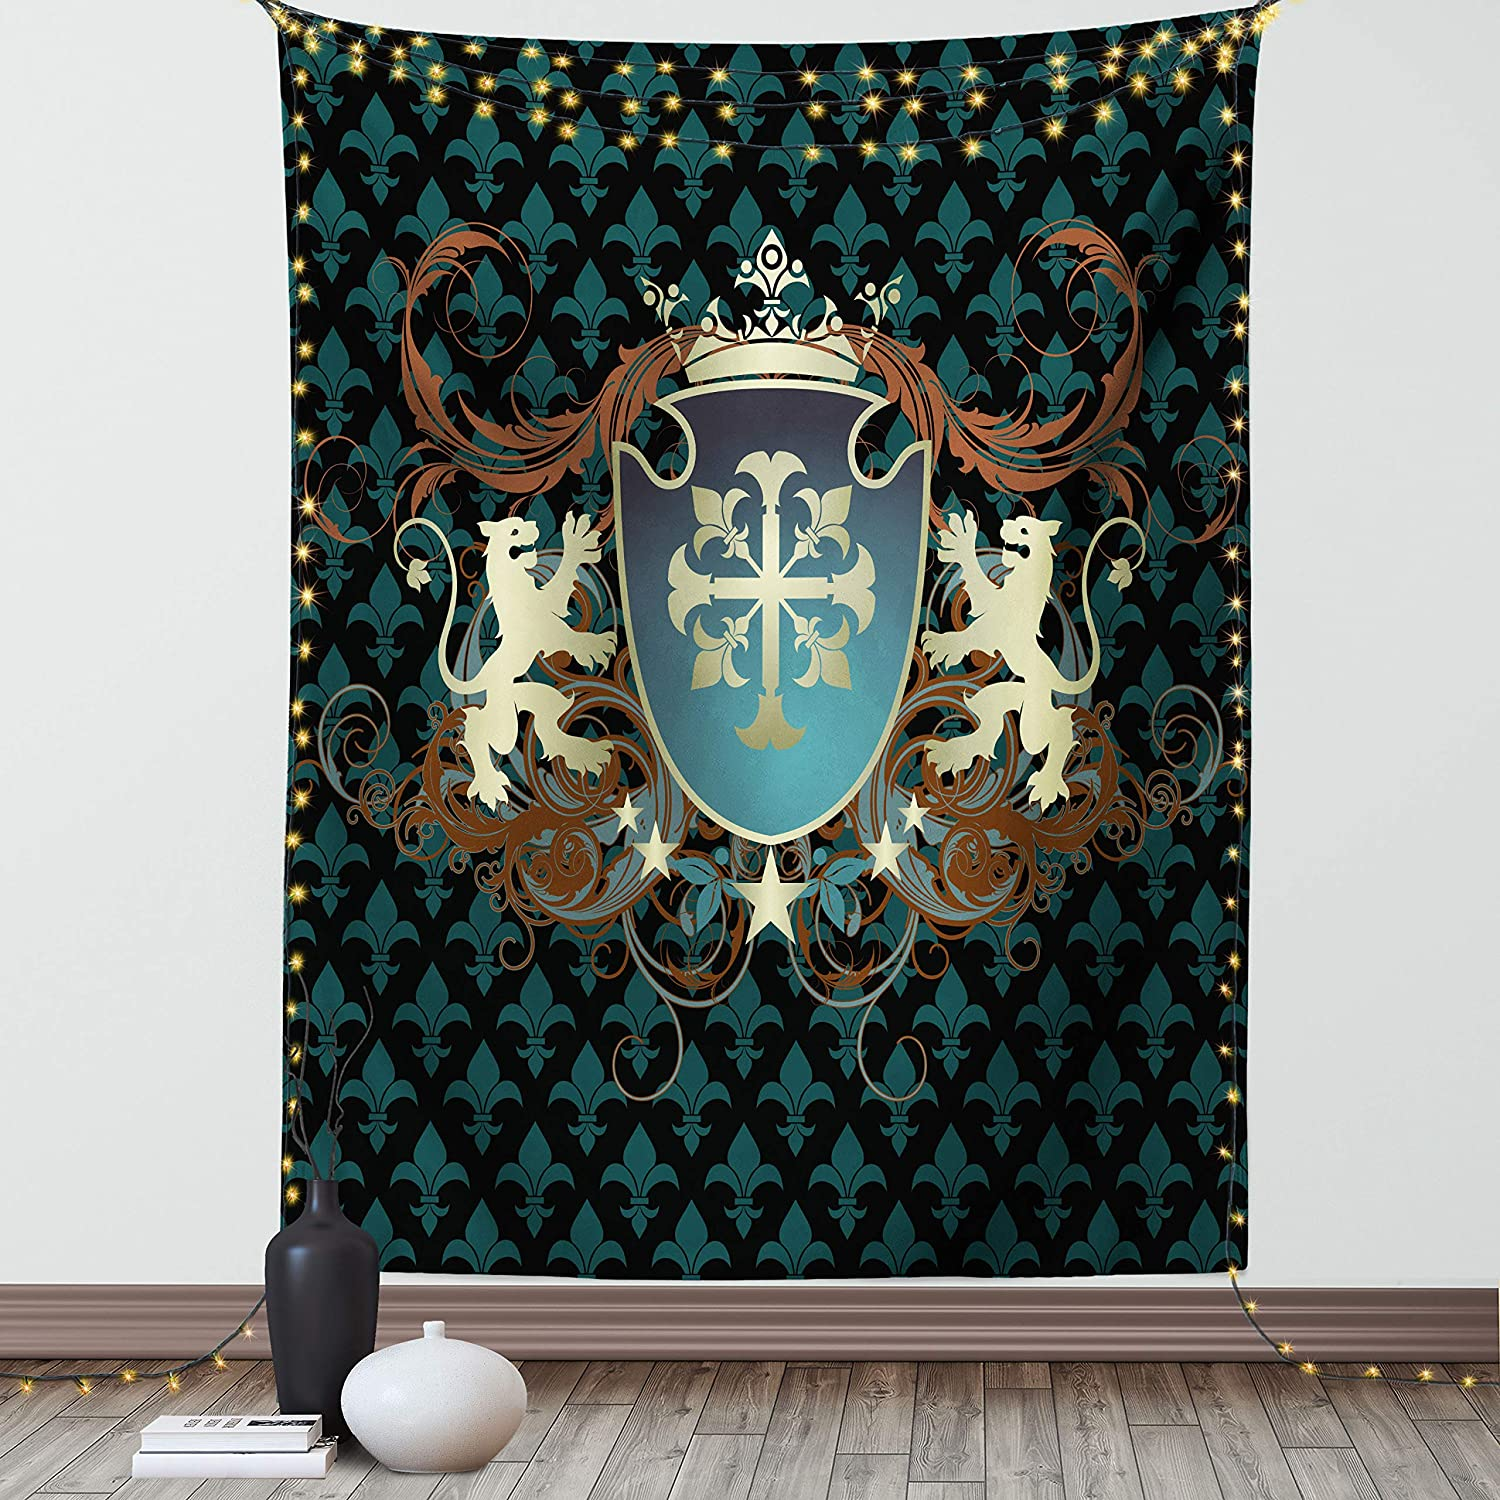 Ambesonne Medieval Tapestry, Heraldic Design from Middle Ages Coat of Arms Crown Lions and Swirls, Wall Hanging for Bedroom Living Room Dorm Decor, 40